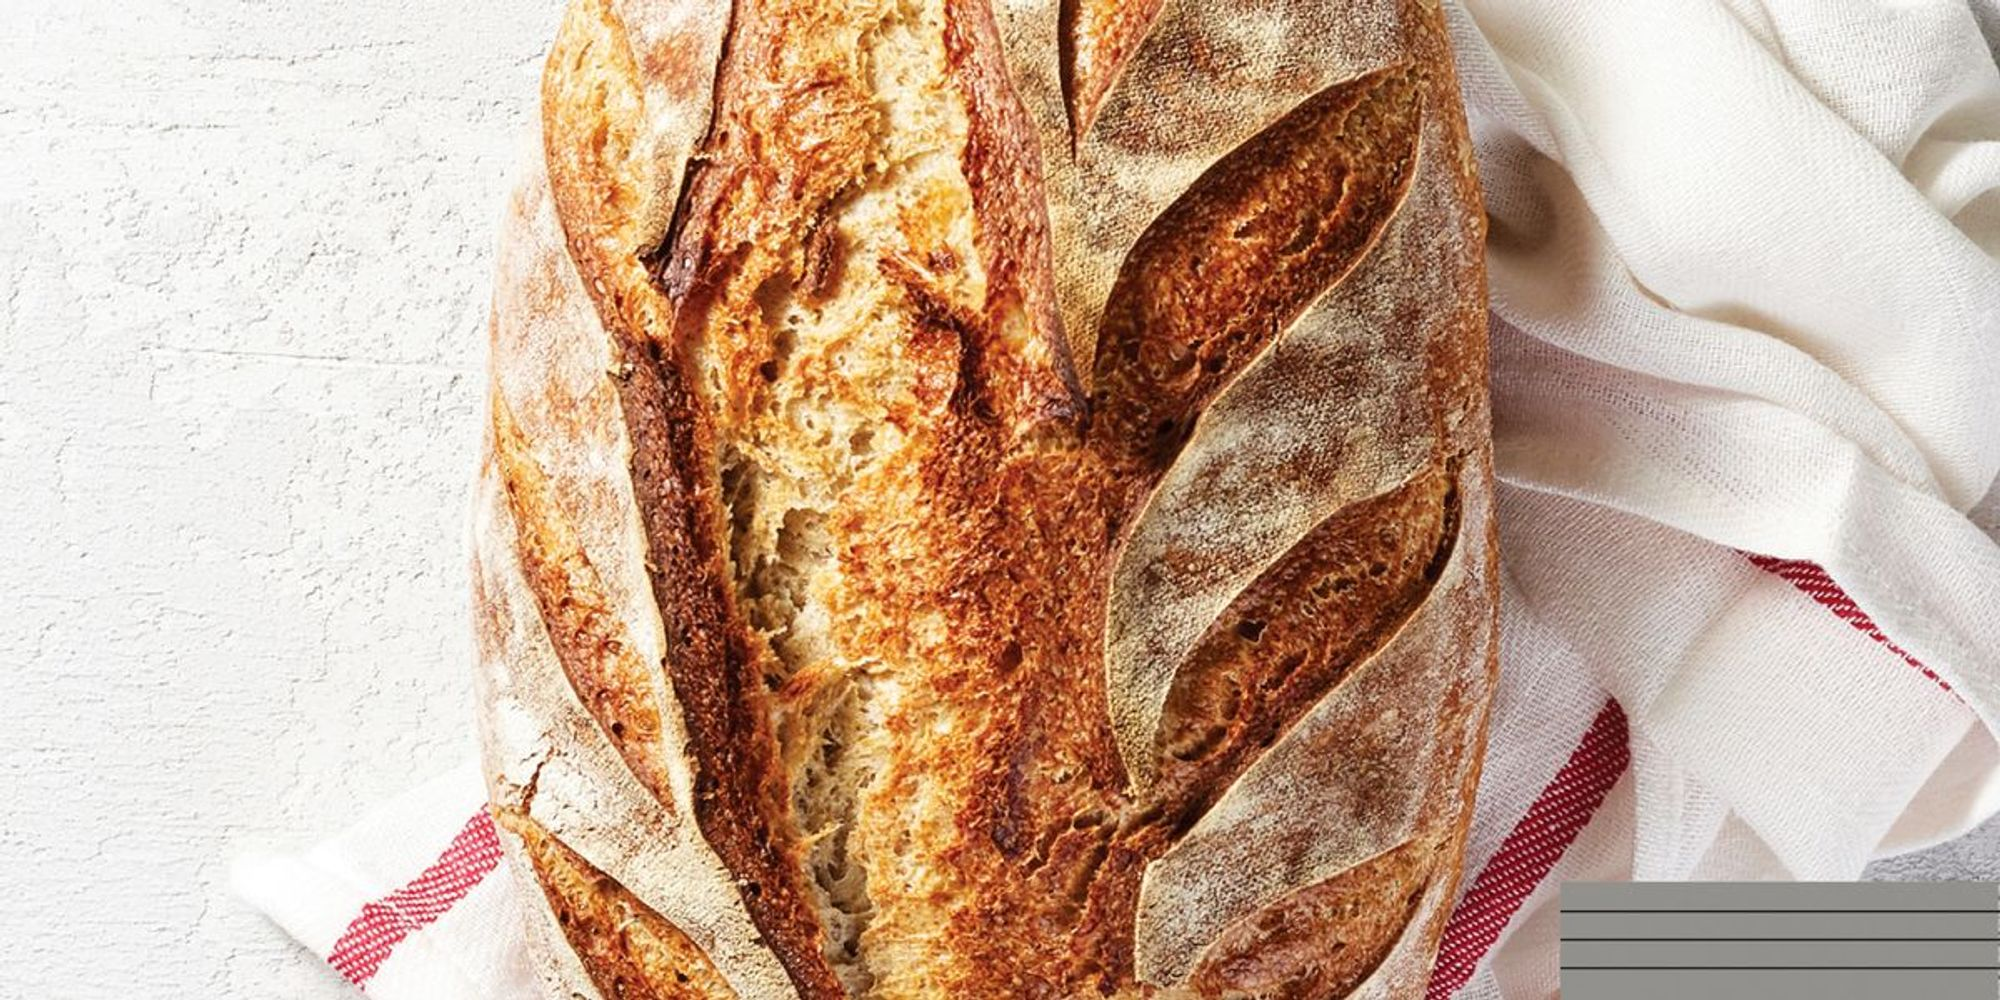 The Essential Bread Recipe That James Beard *Himself* Swore By